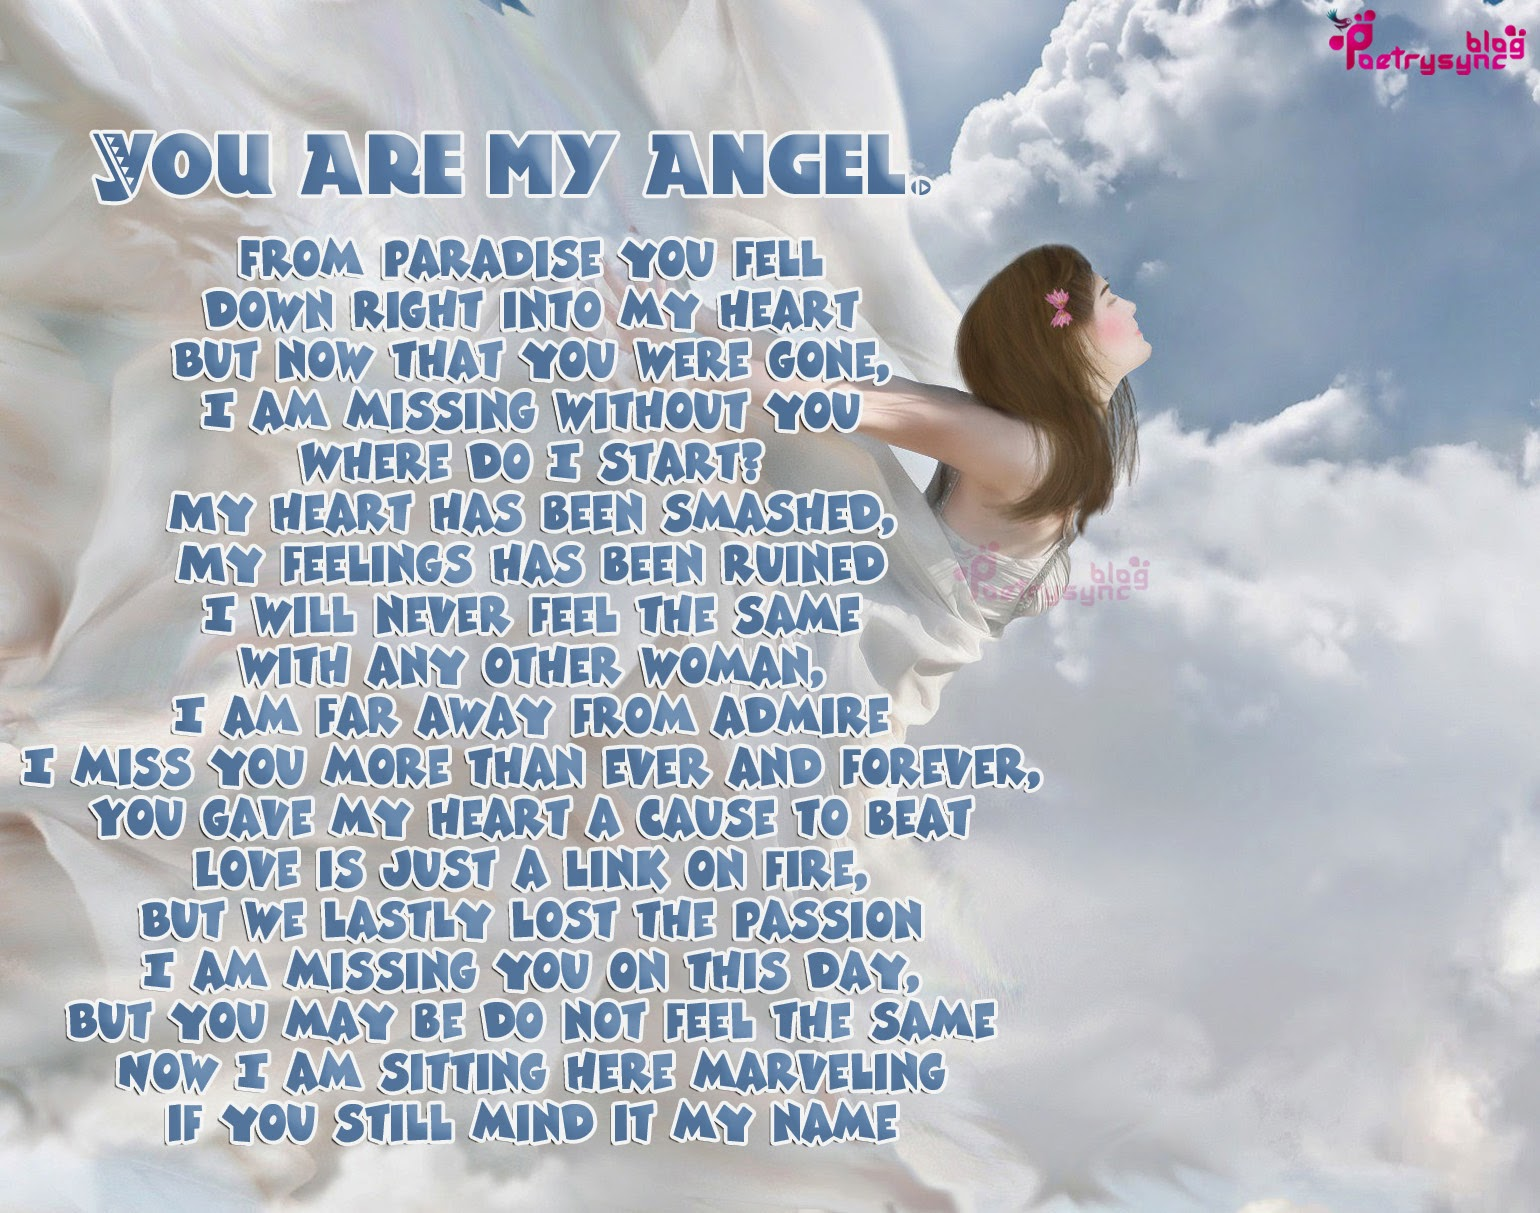 angels images love poem - photo #10